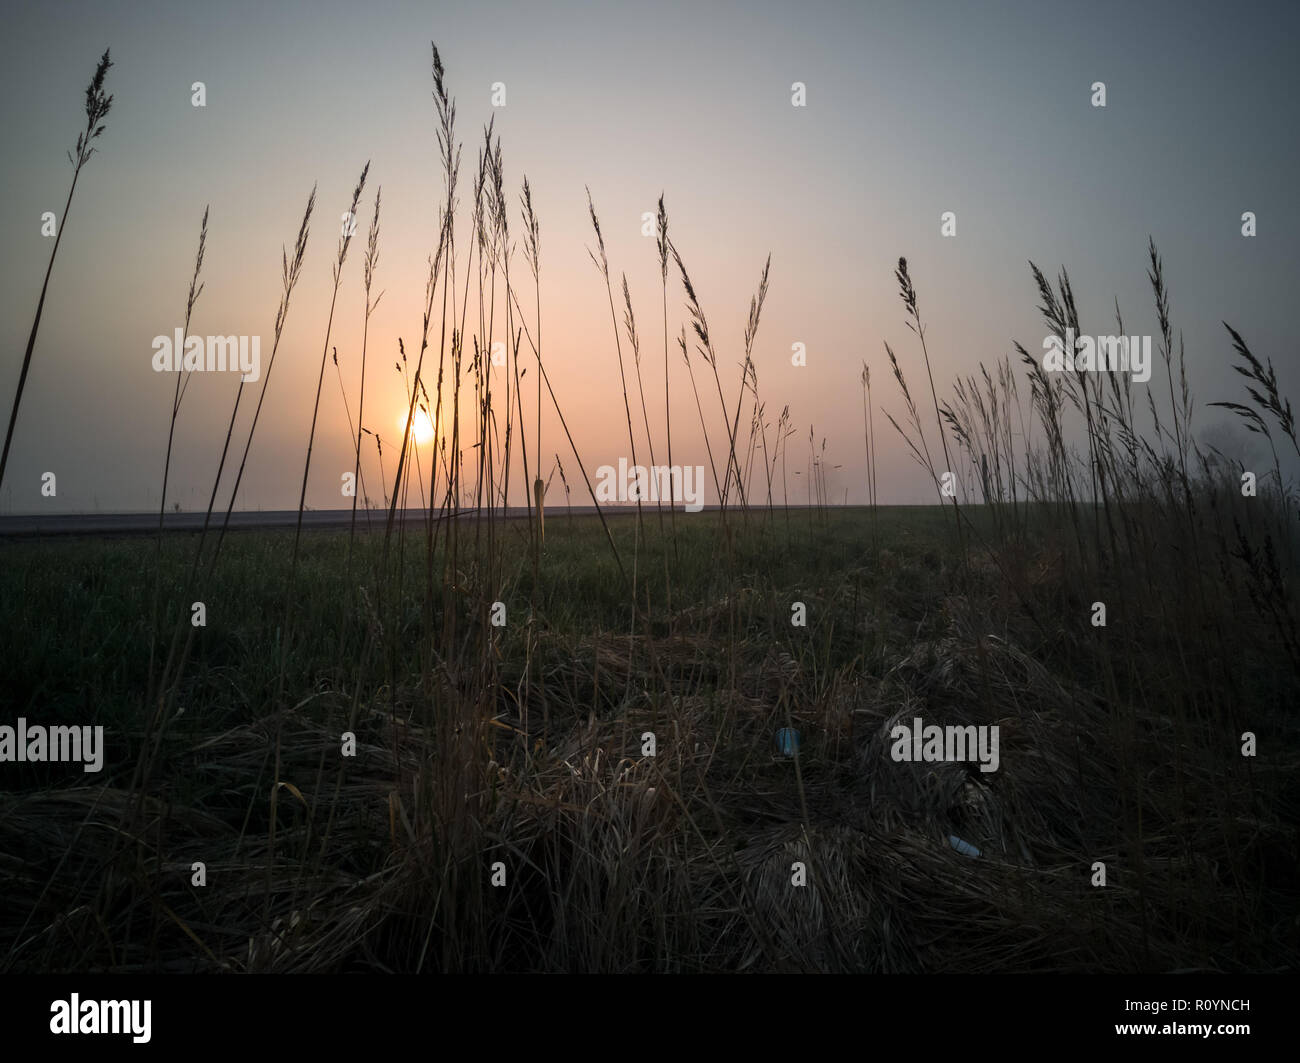 Grass Stalks in an Early Morning Besides Countryside Road with a Heavy Mist Covering the Background, and Sun Shining Through them - Stock Image